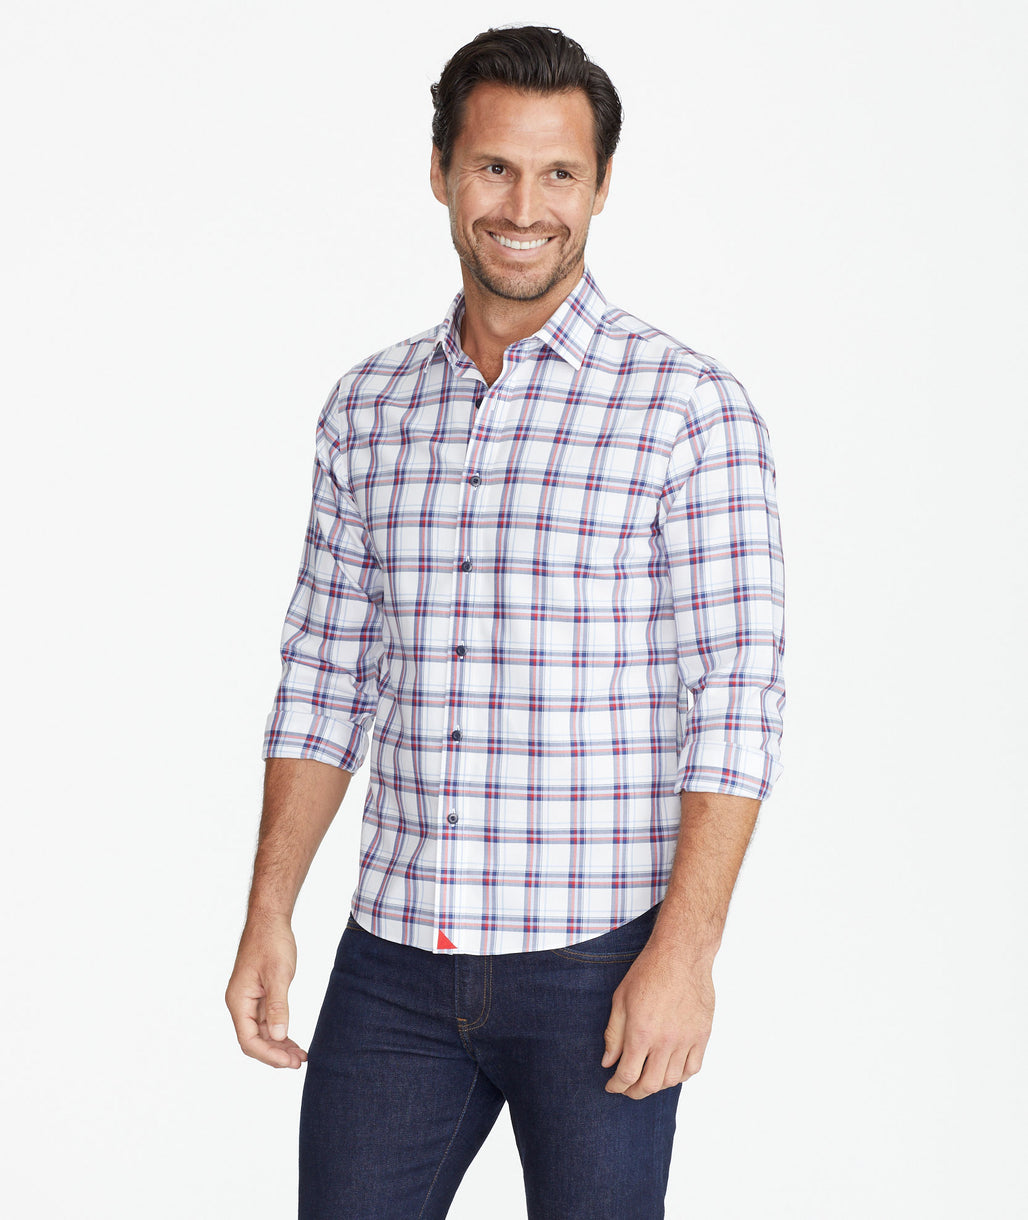 Model wearing a Red Lightweight Wrinkle-Free Flannel Baron Shirt